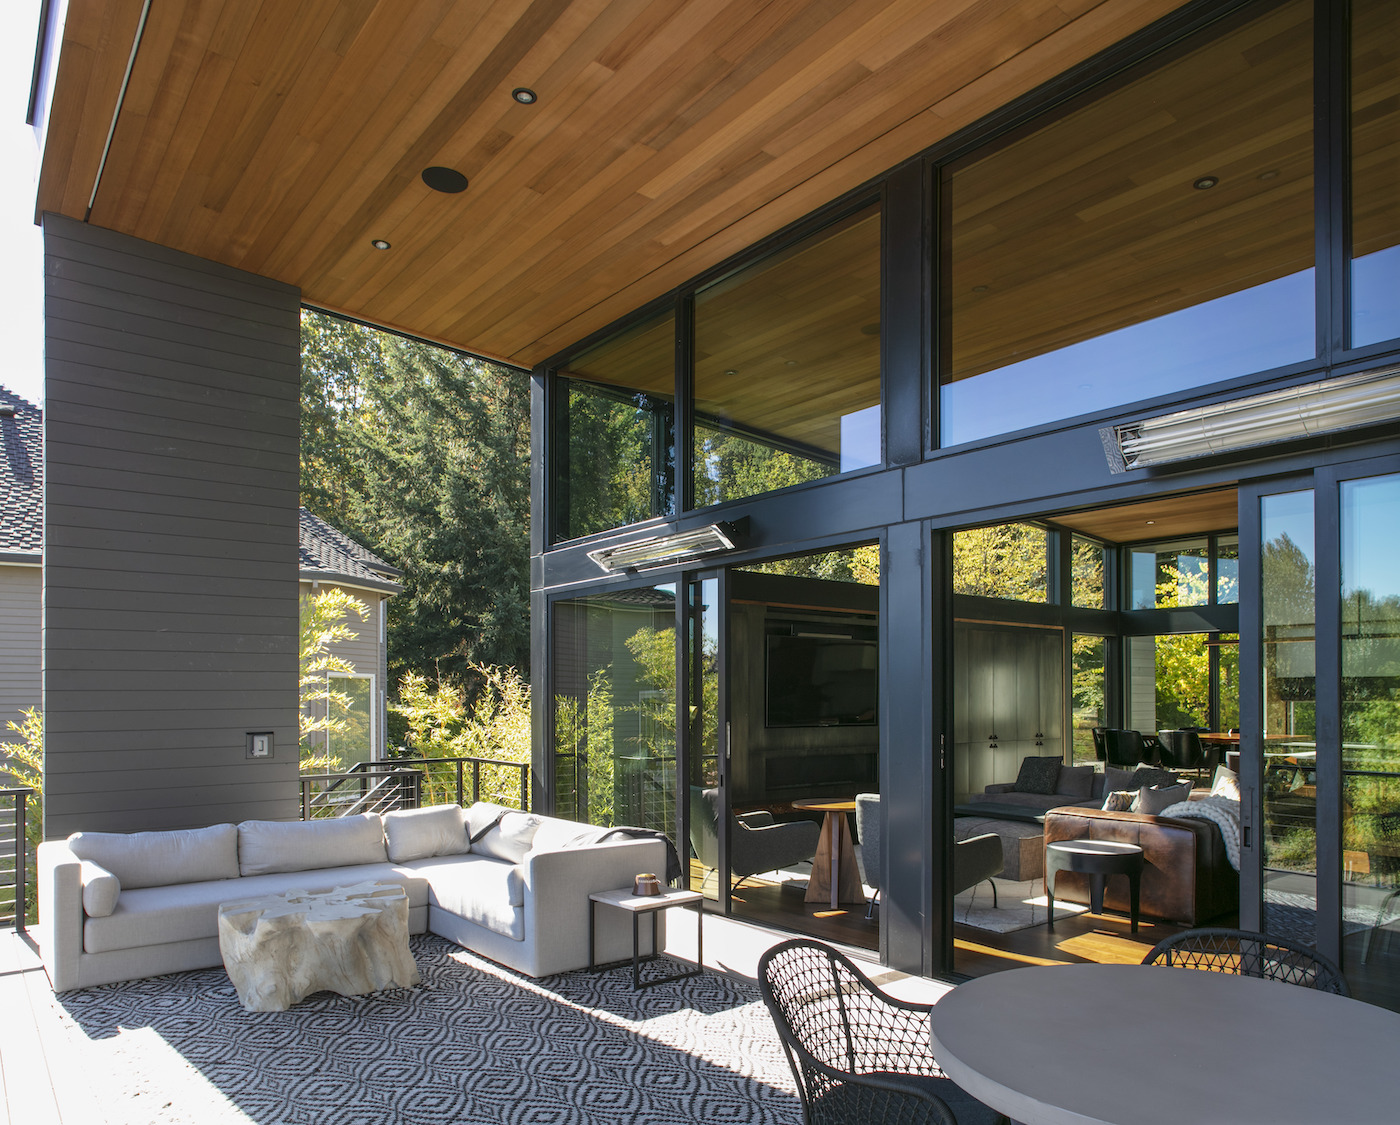 Design and amenities remain an important consideration to Net Zero home buyers. Image courtesy JELD-WEN